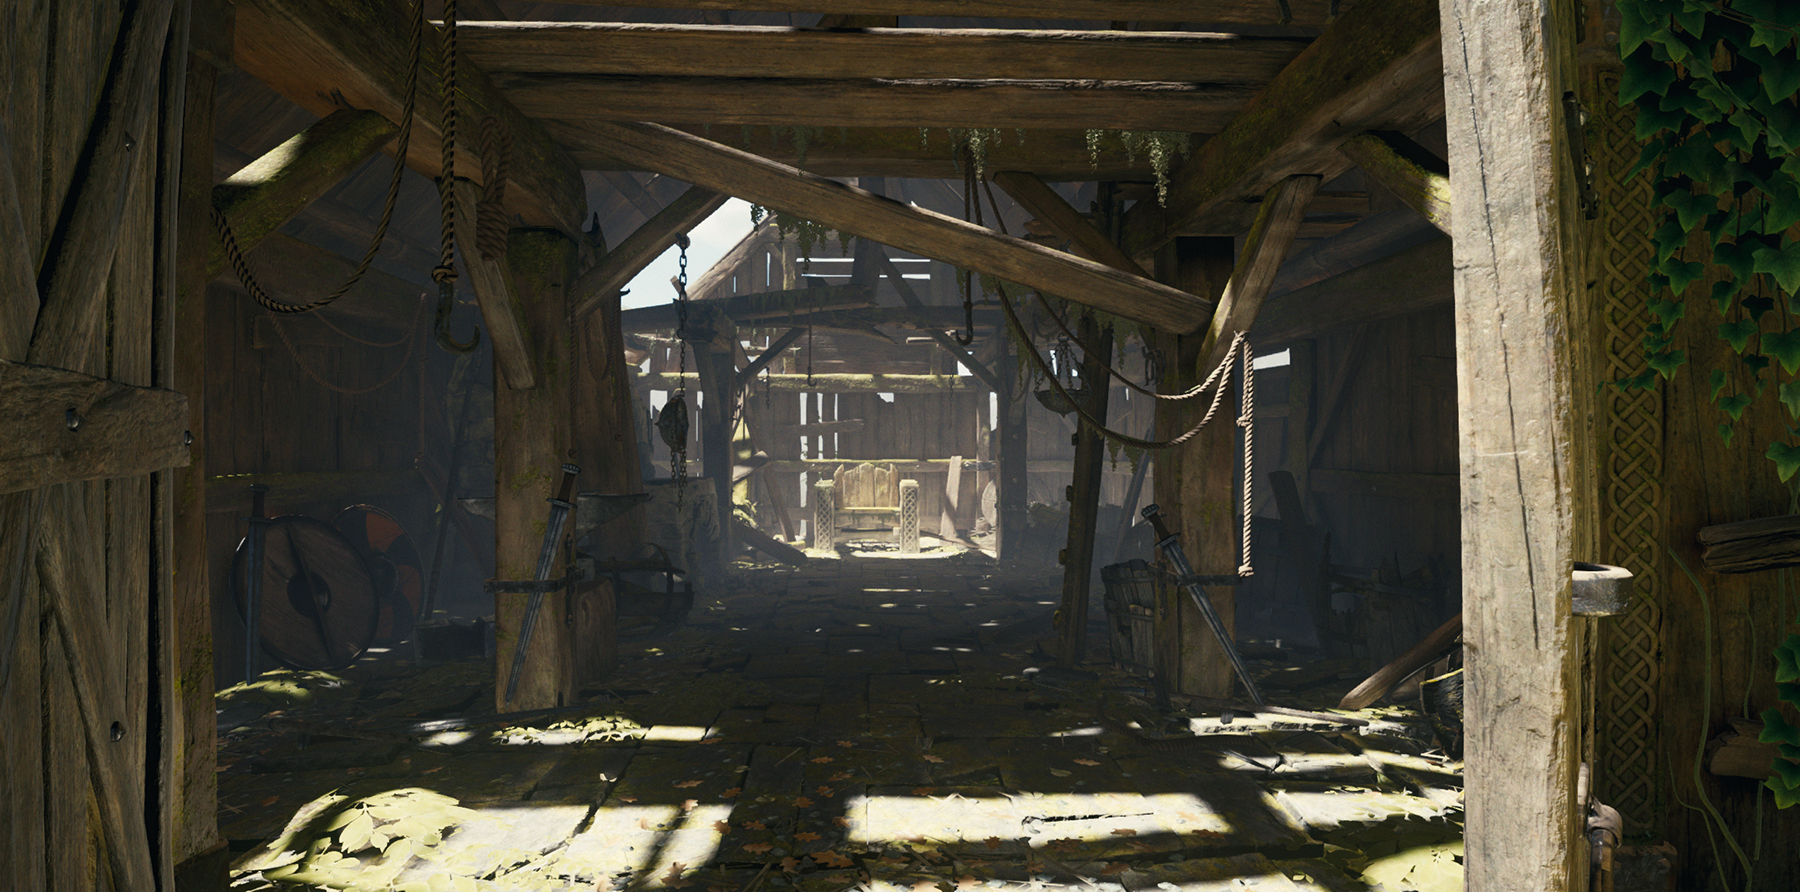 The Blacksmith demo project from Unity